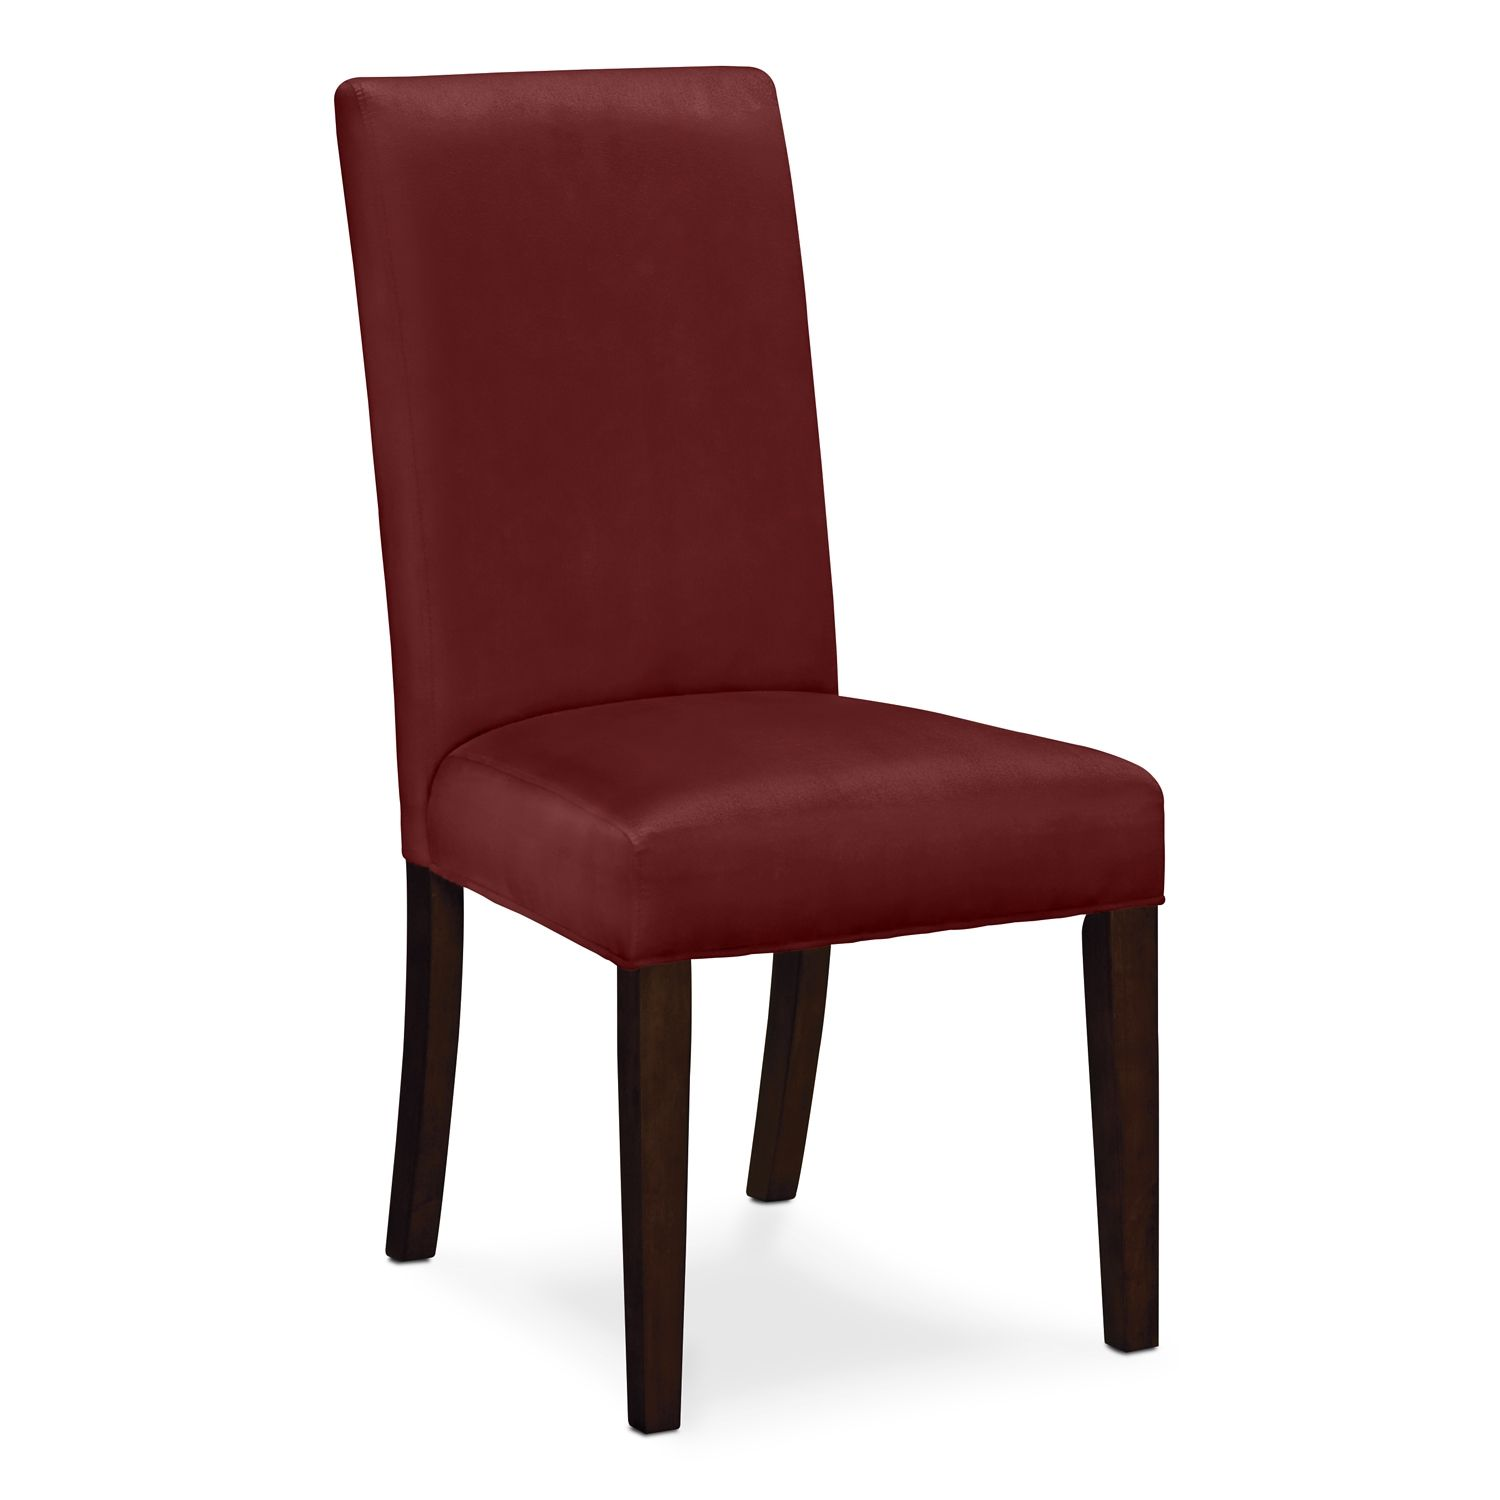 Alcove Red Dining Room Chair  Value City Furniture $69  Make Stunning Dining Room Chairs Red Design Ideas